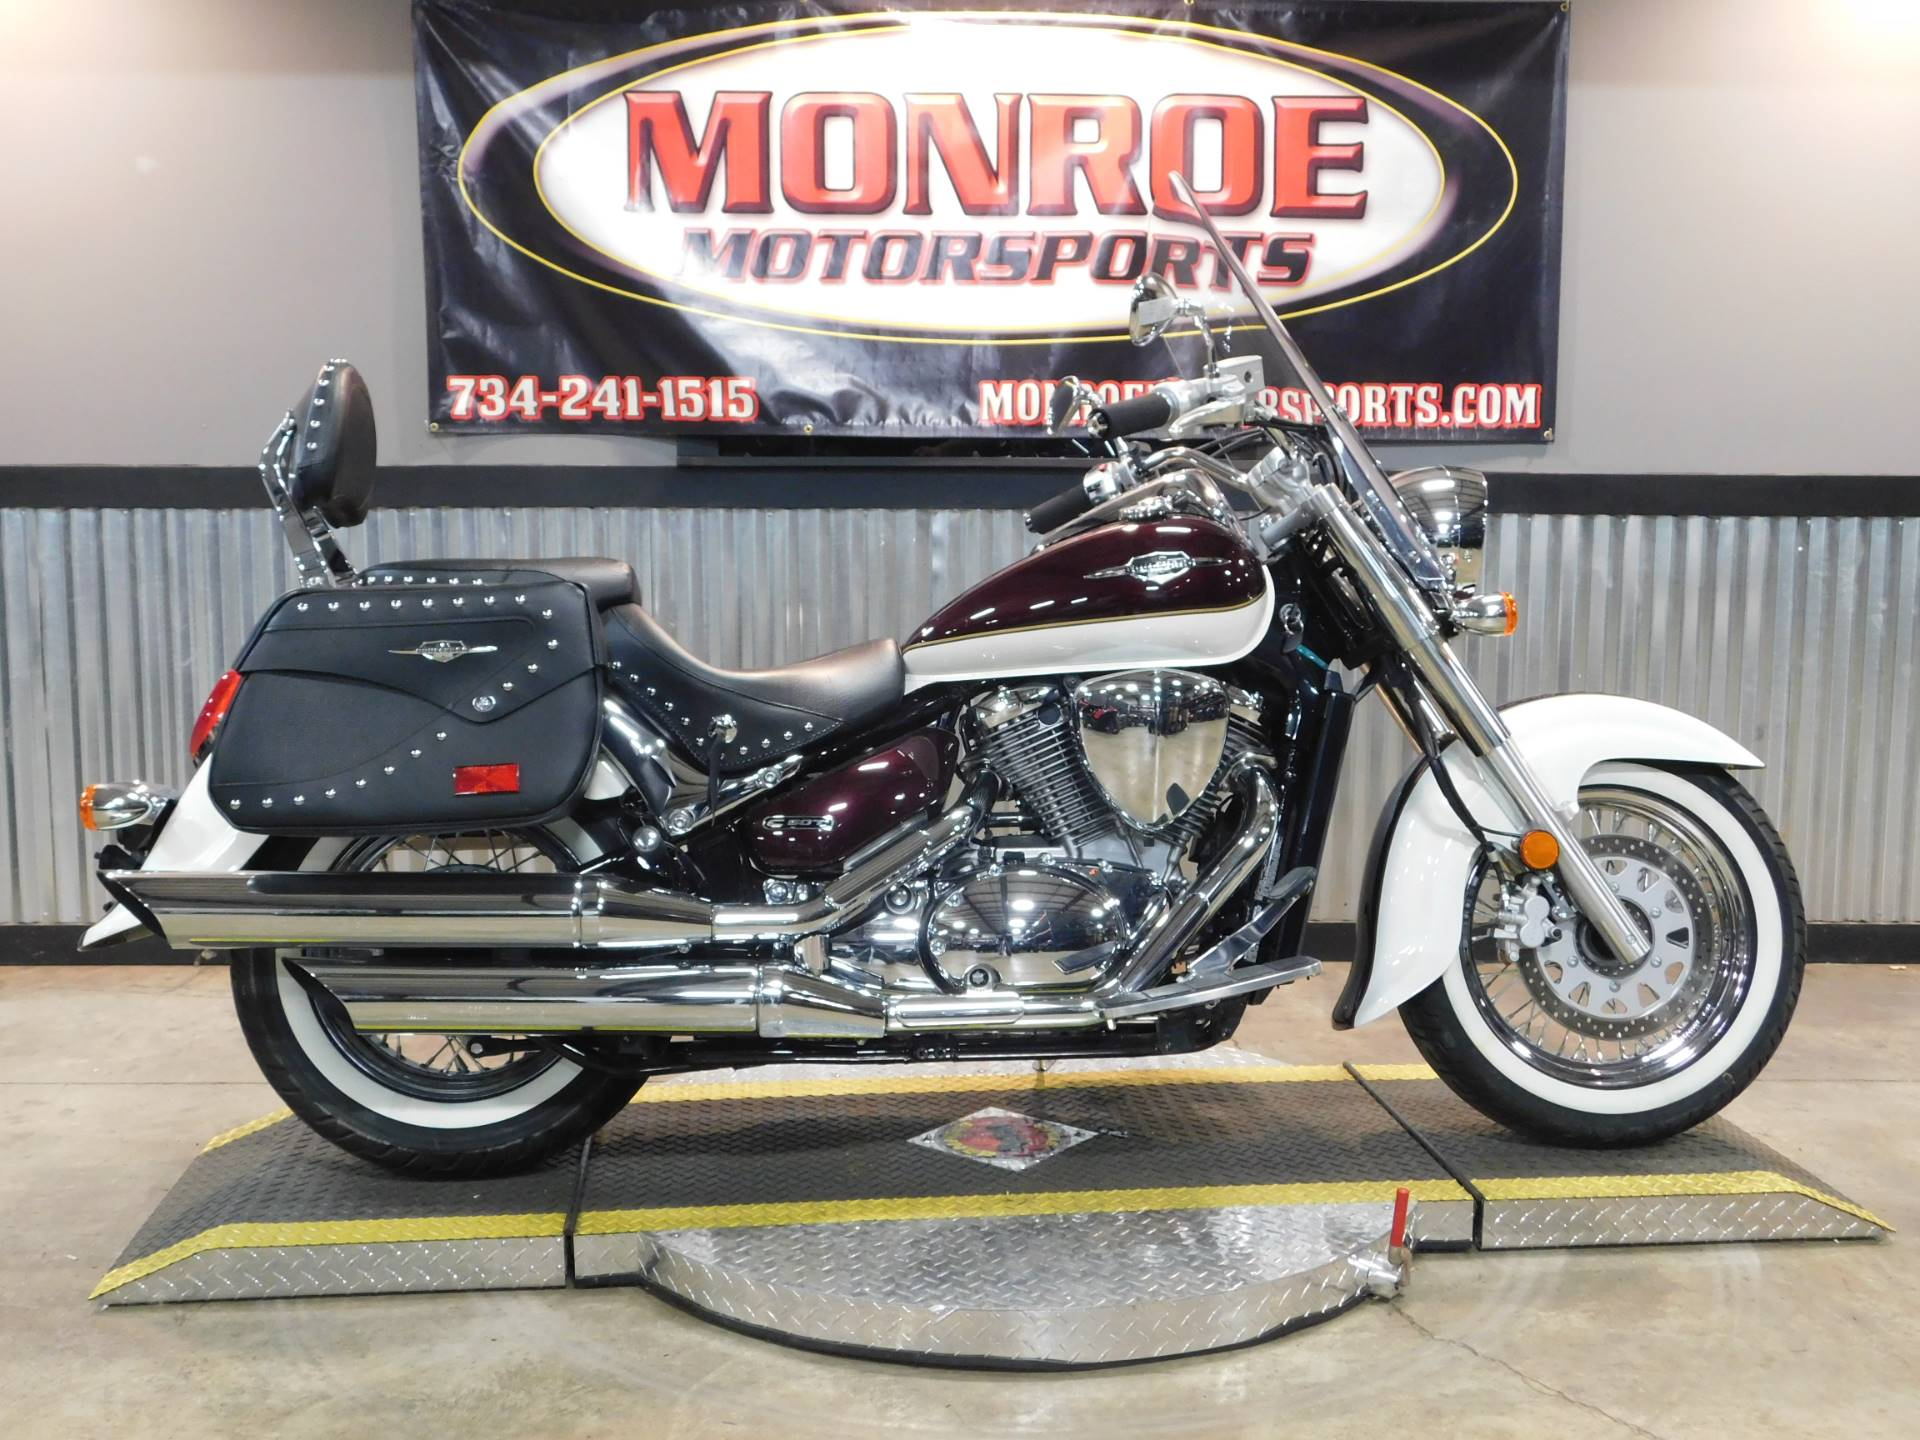 2014 Suzuki Boulevard C50T in Monroe, Michigan - Photo 1